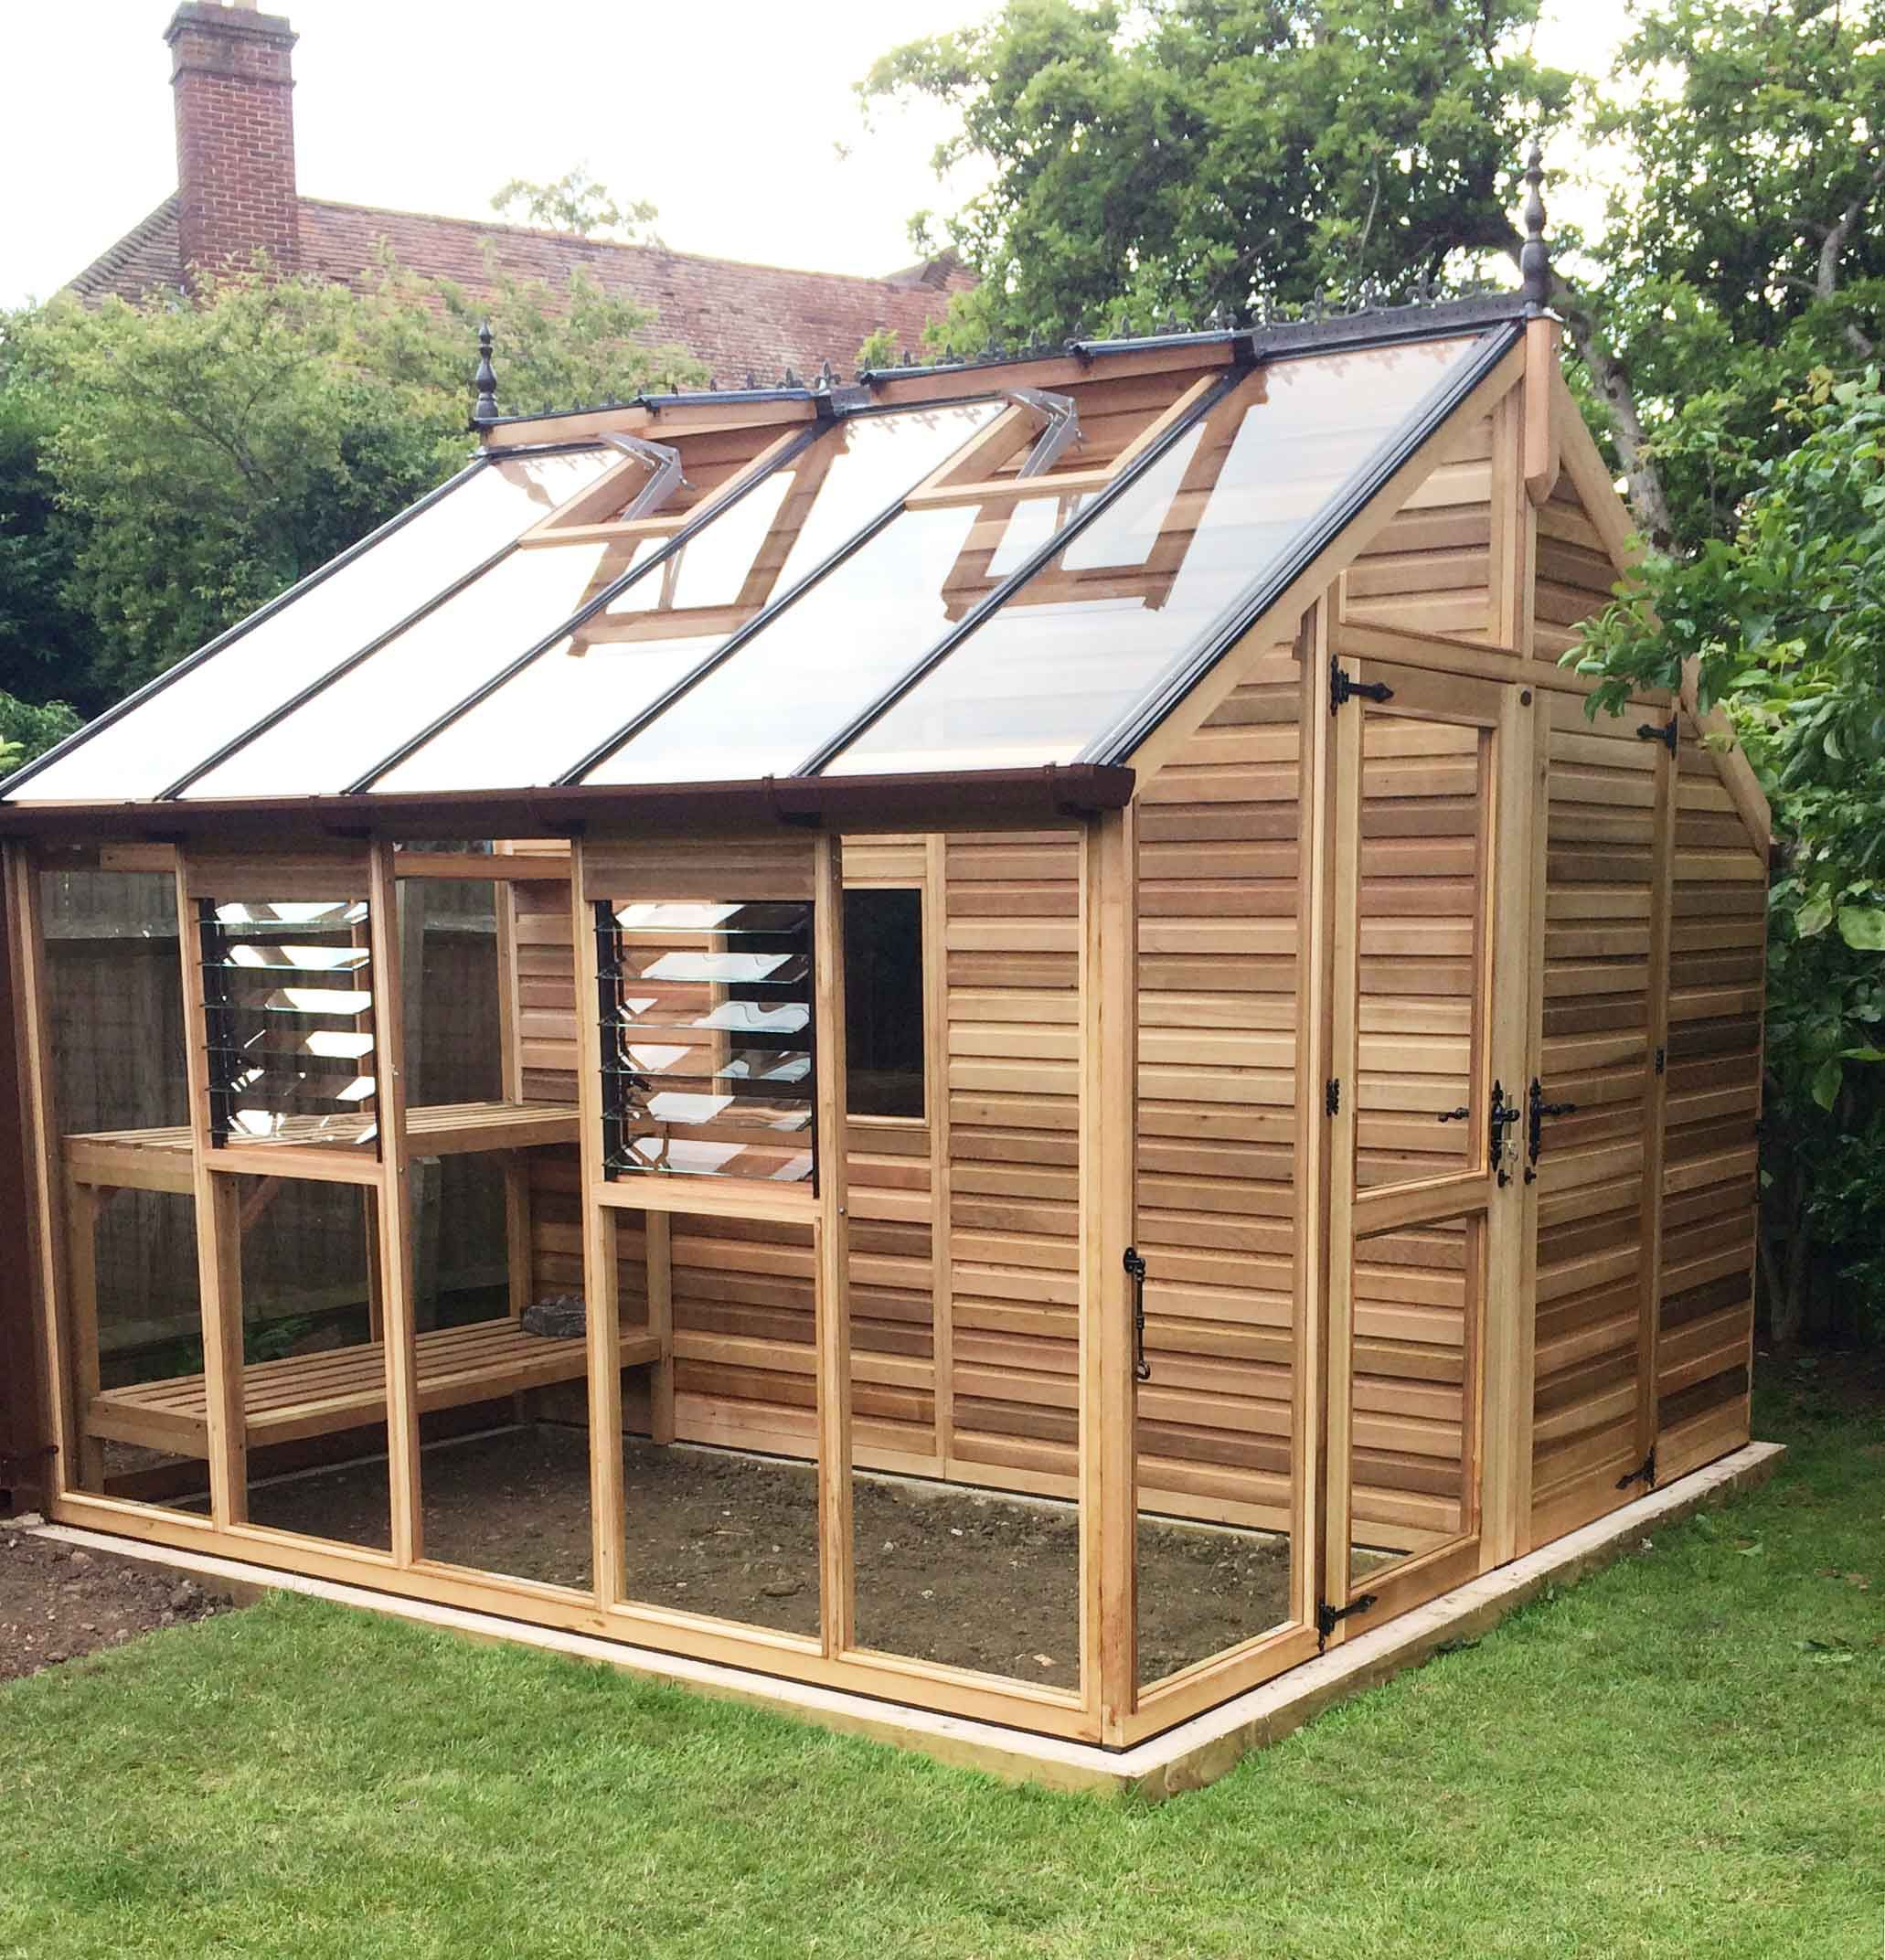 Cedar centaur shed greenhouse combo 12x12 greenhouse for Potting shed plans diy blueprints